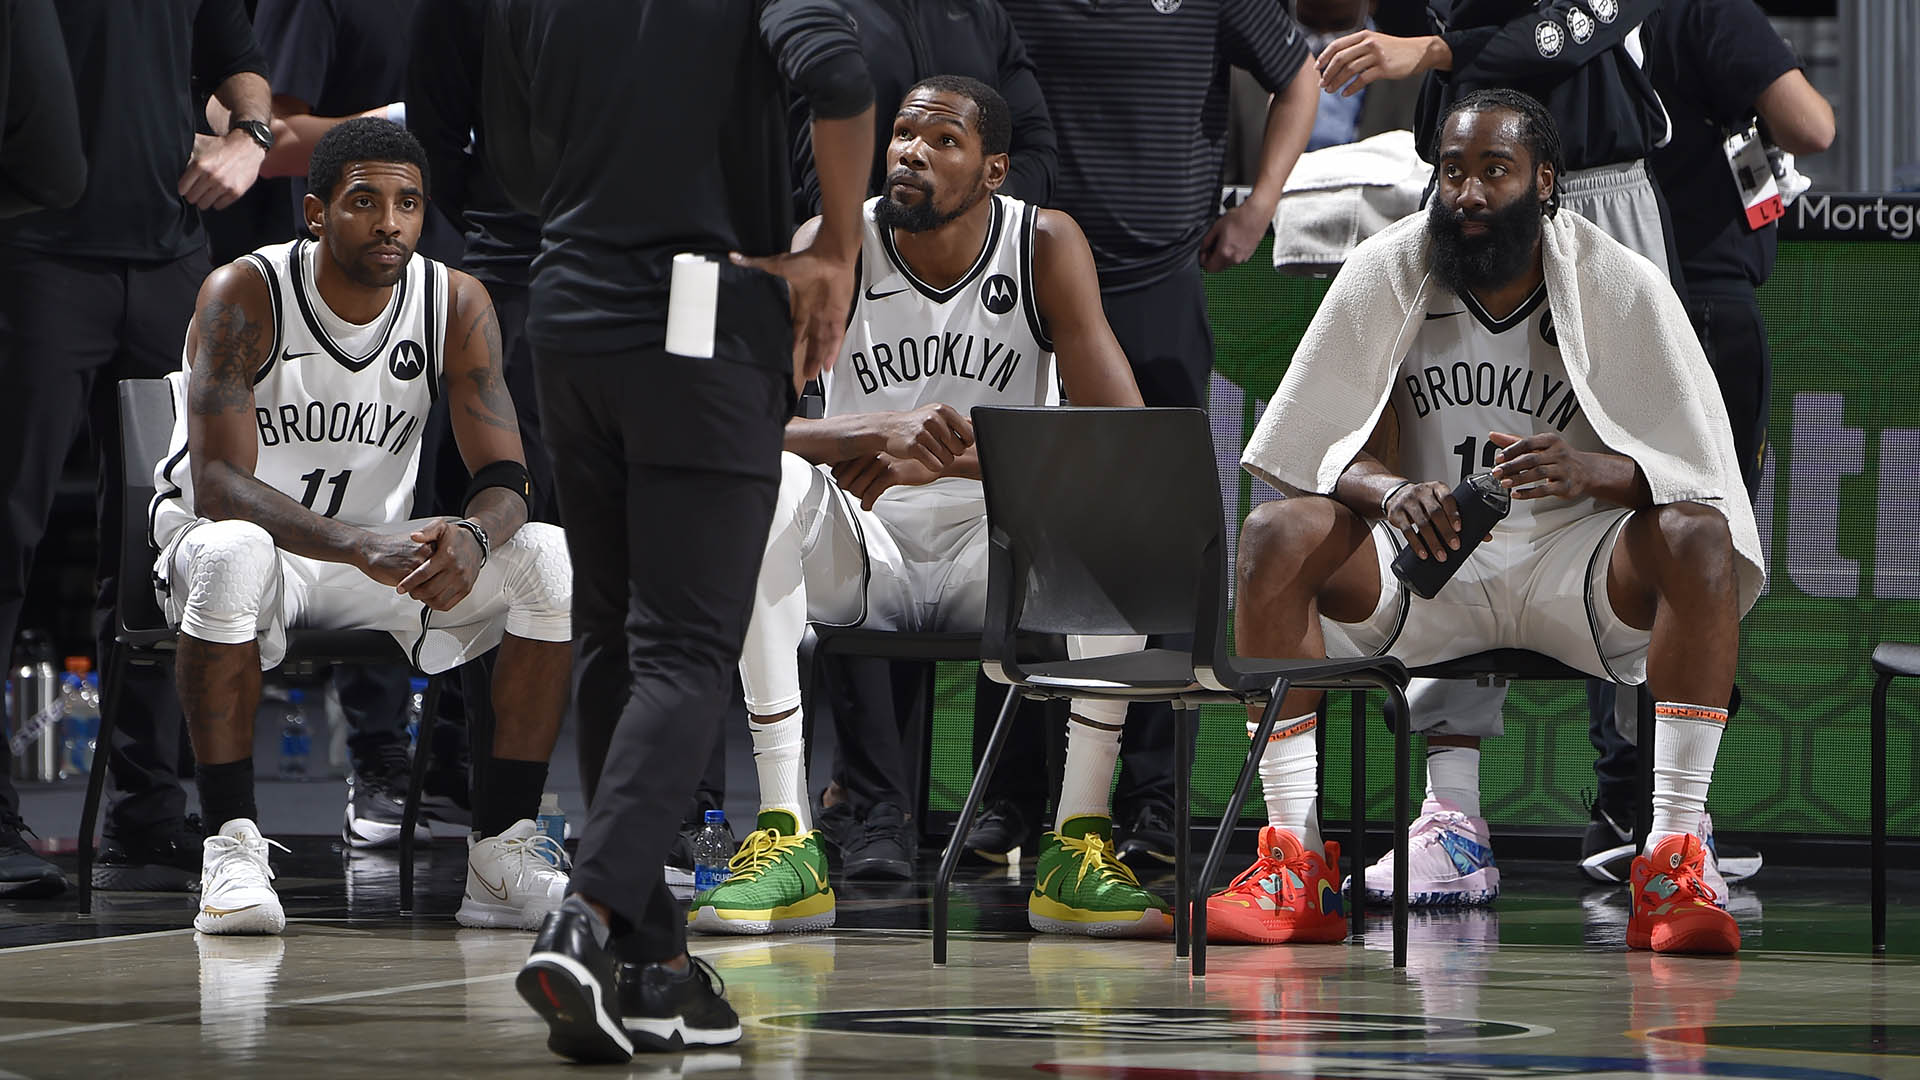 Can Nets Build A Defense To Match Their Offense?